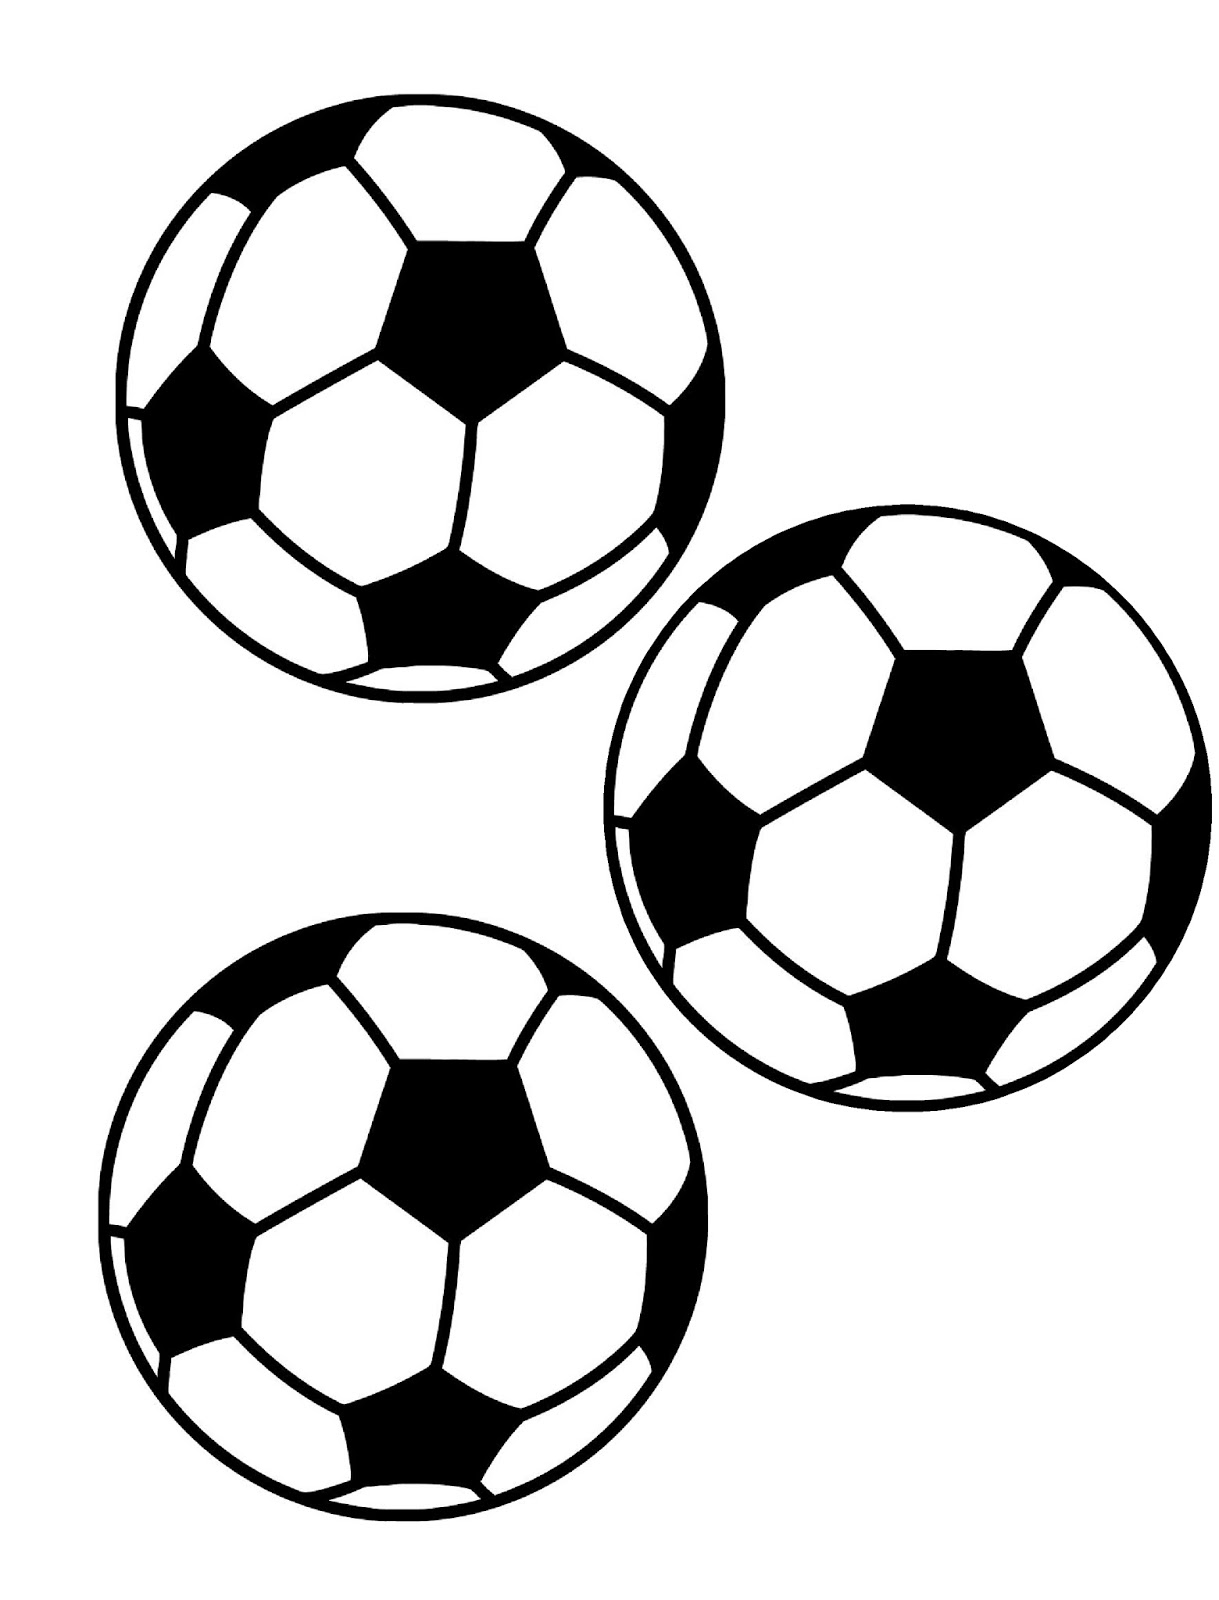 Sassy image intended for free printable soccer ball